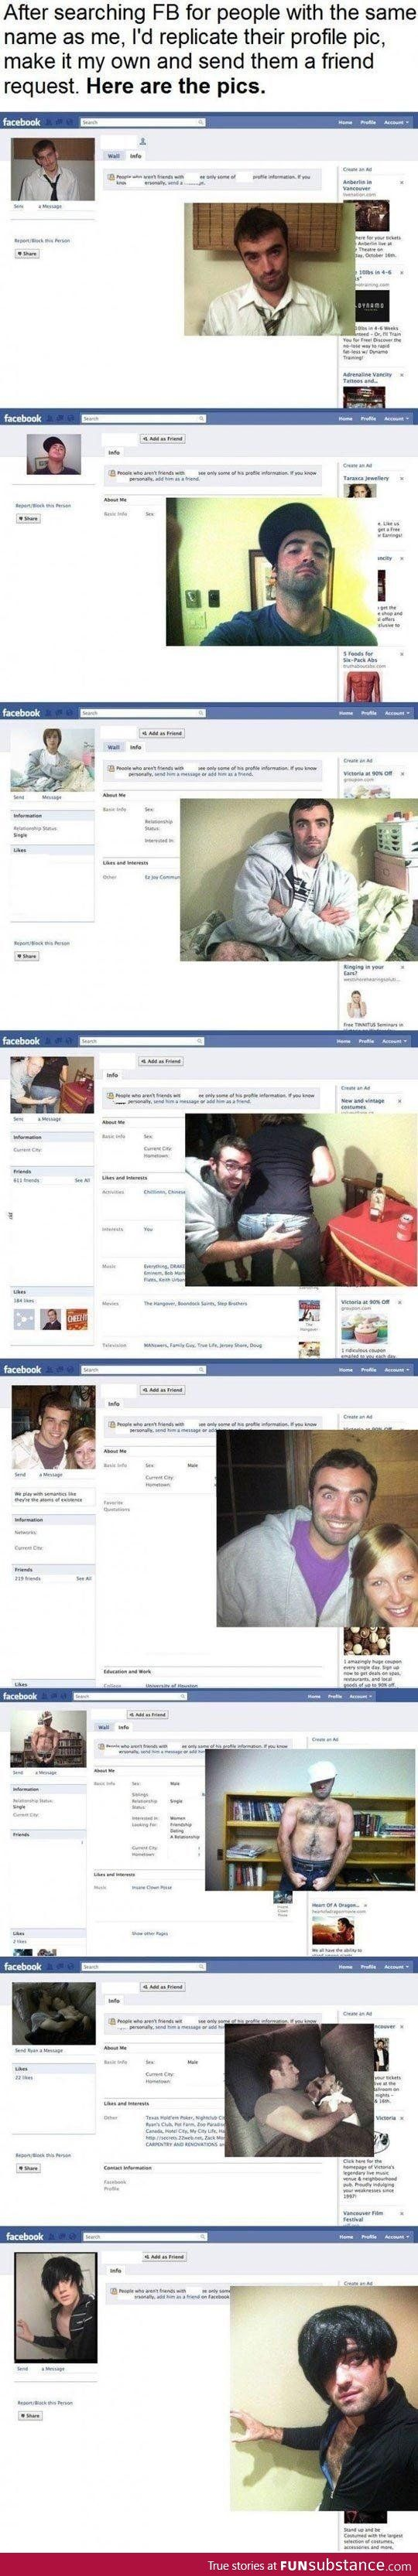 Facebook Prank, completely cracked me up...even thinking about doing it...hehe